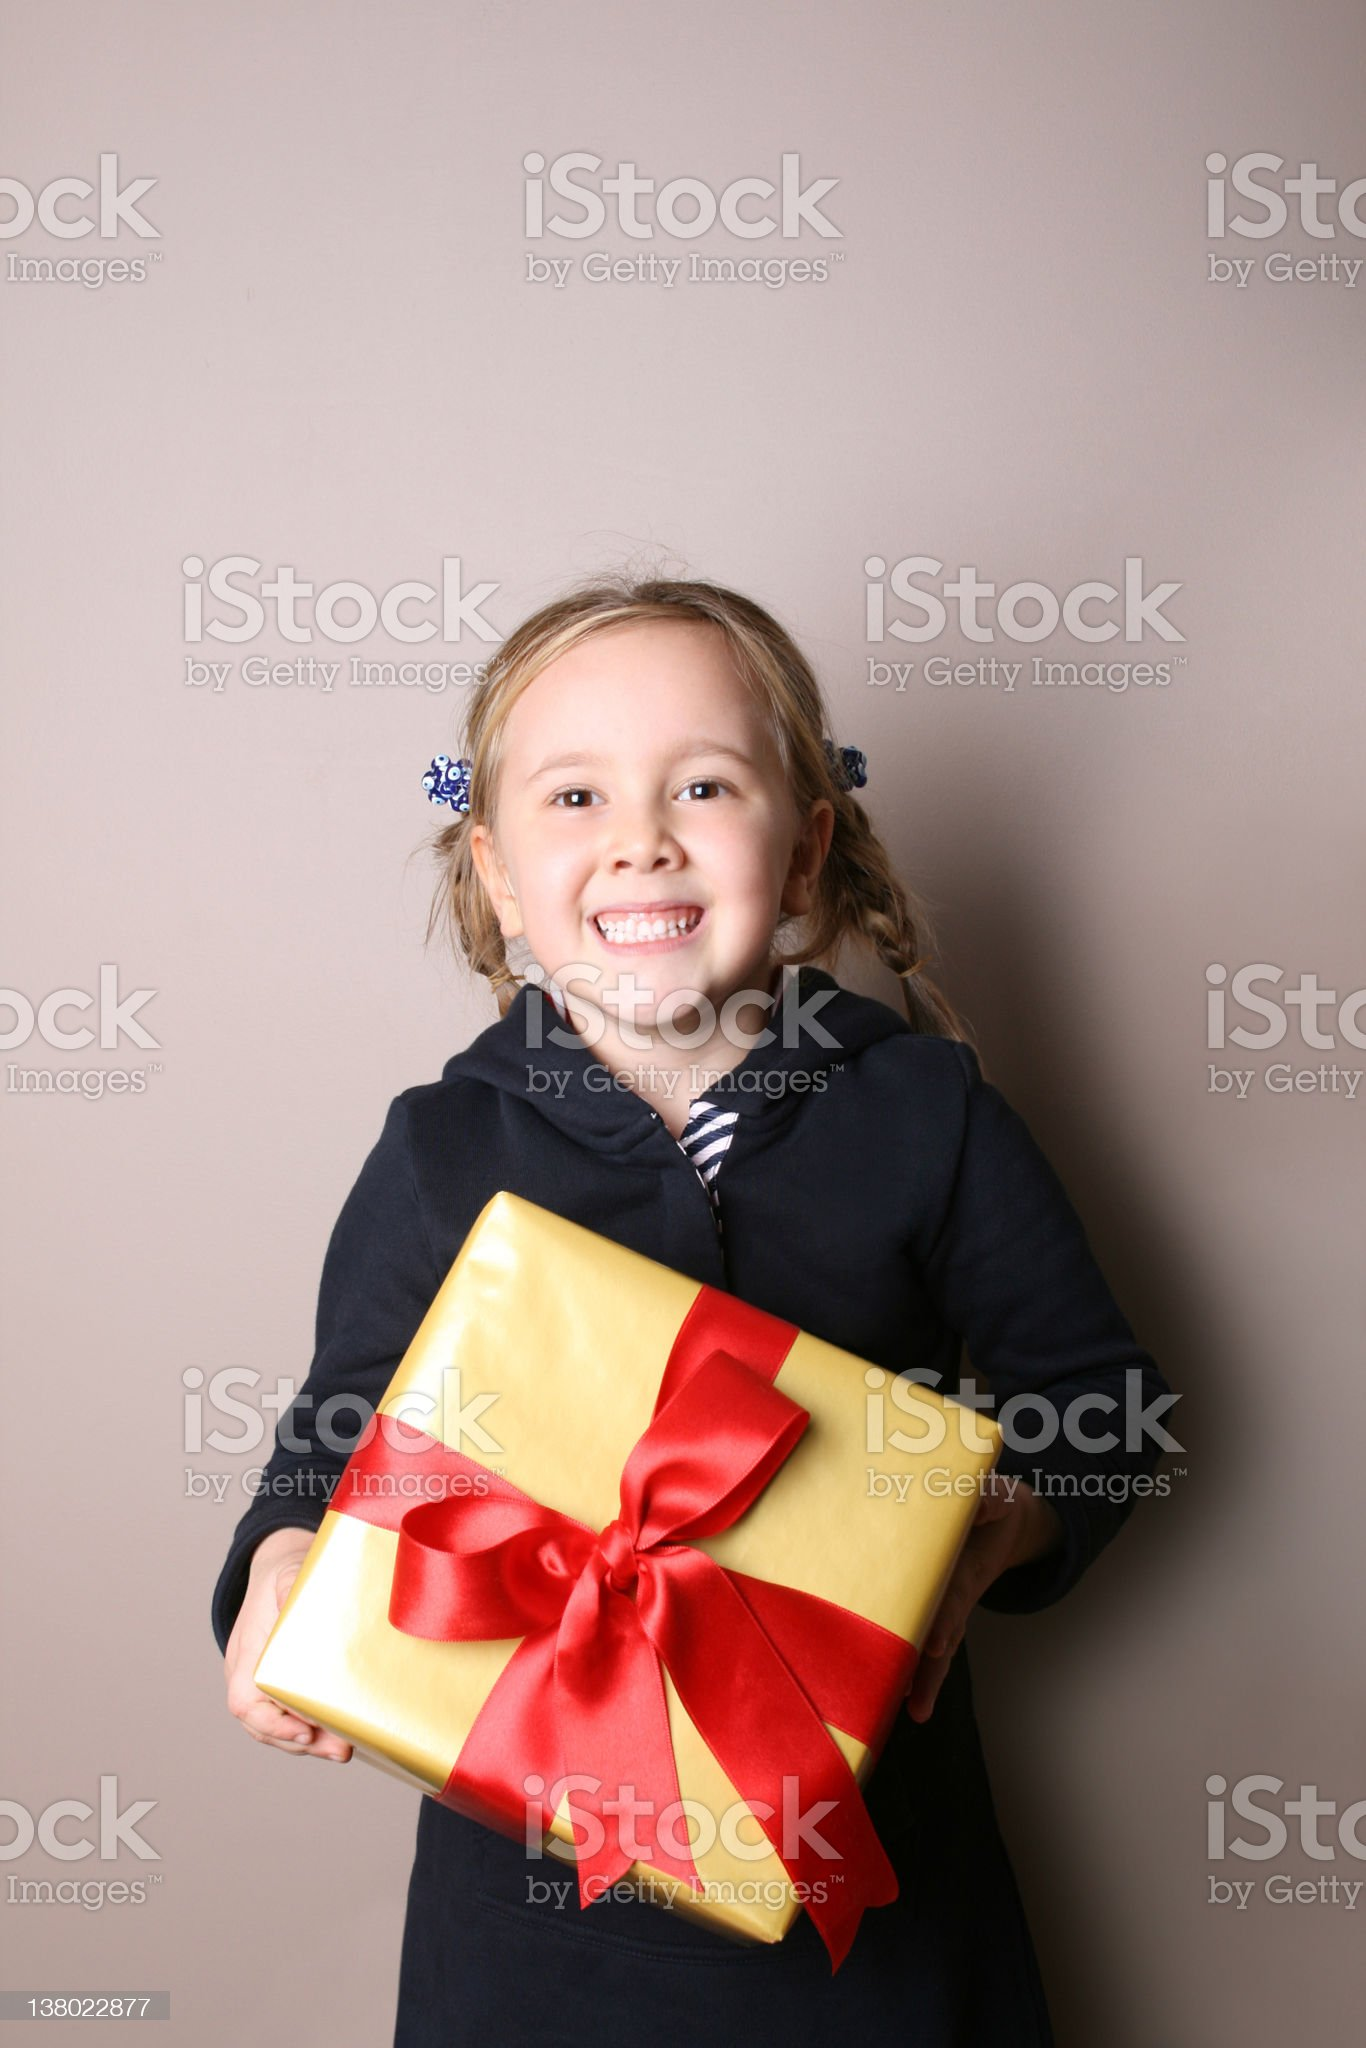 Gift Box Suprise royalty-free stock photo